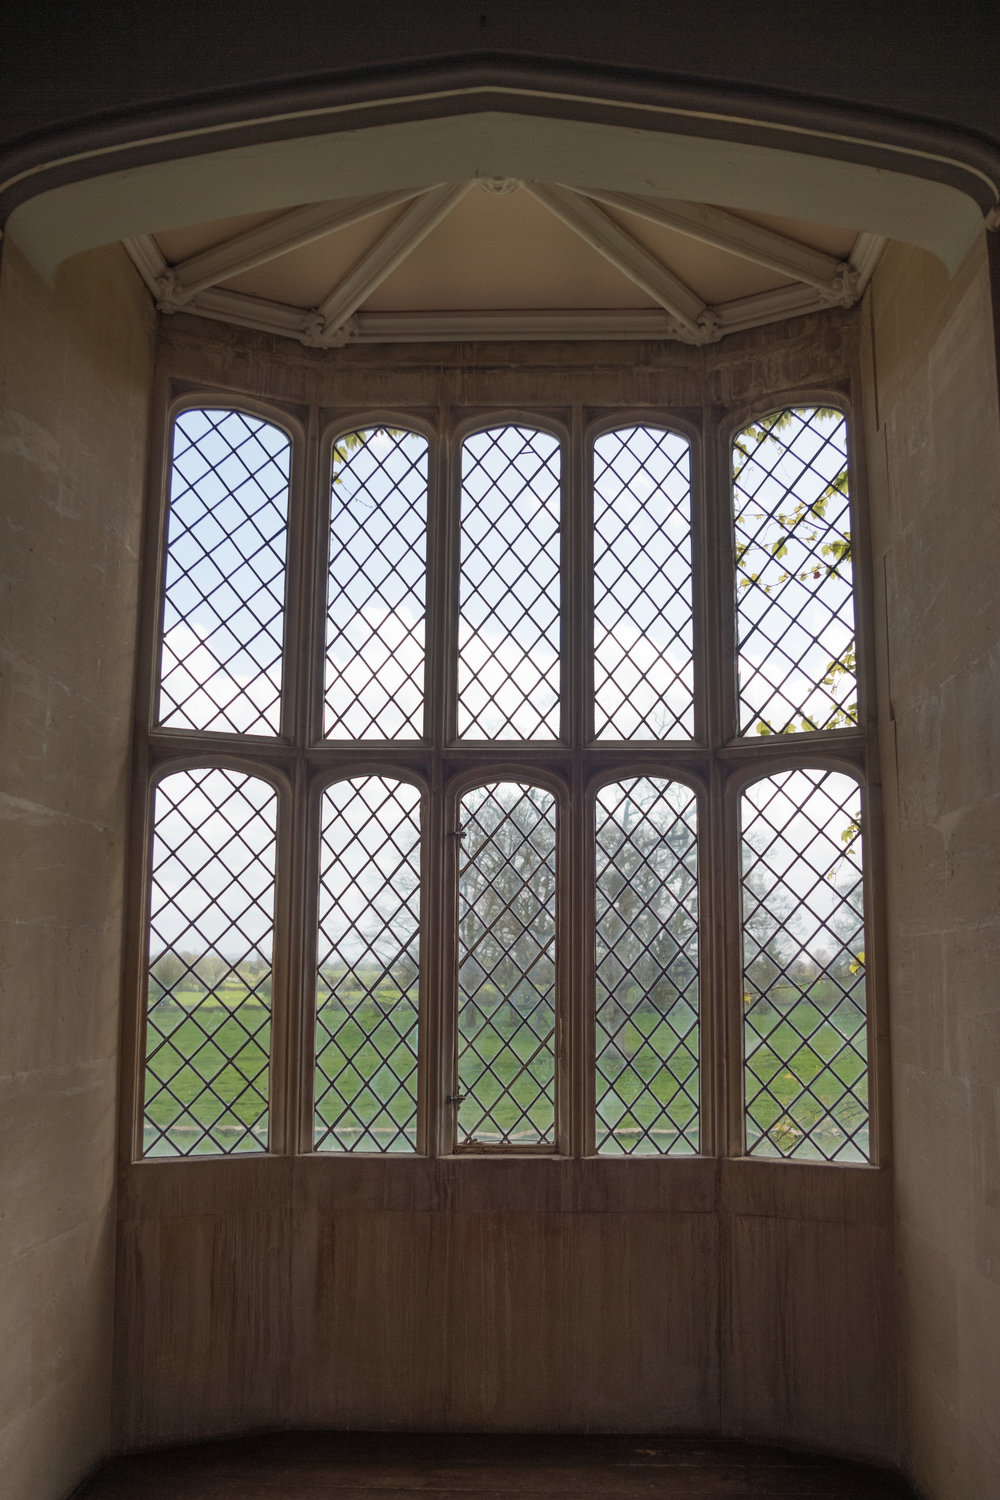 The original lattice window, as seen by Fox Talbot's box camera, doesn't benefit much from colour, but the outside view is quite stunning